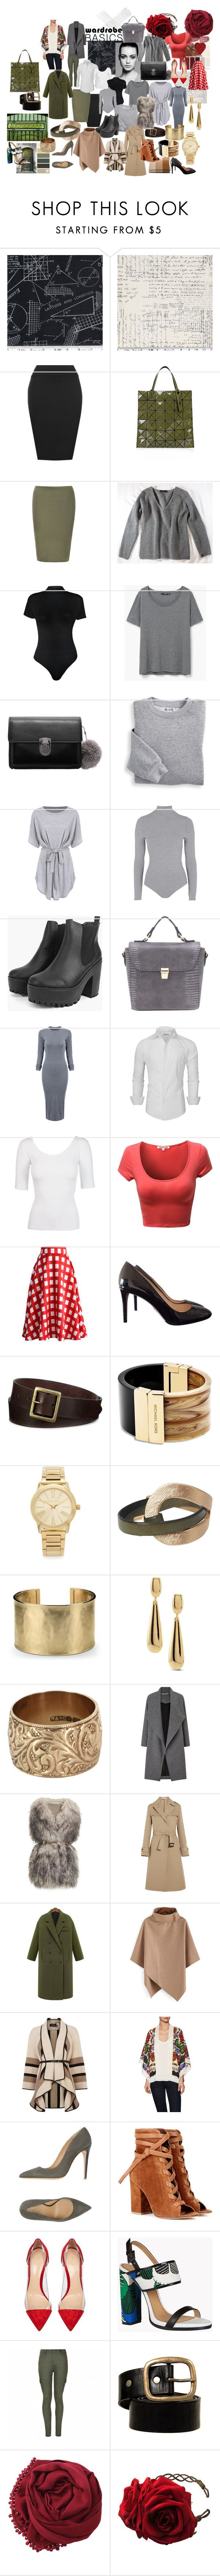 """Vintage Basics"" by supersilent on Polyvore featuring moda, Trowbridge, WearAll, Bao Bao by Issey Miyake, CO, MANGO, Blair, Topshop, Chicwish i Prada"